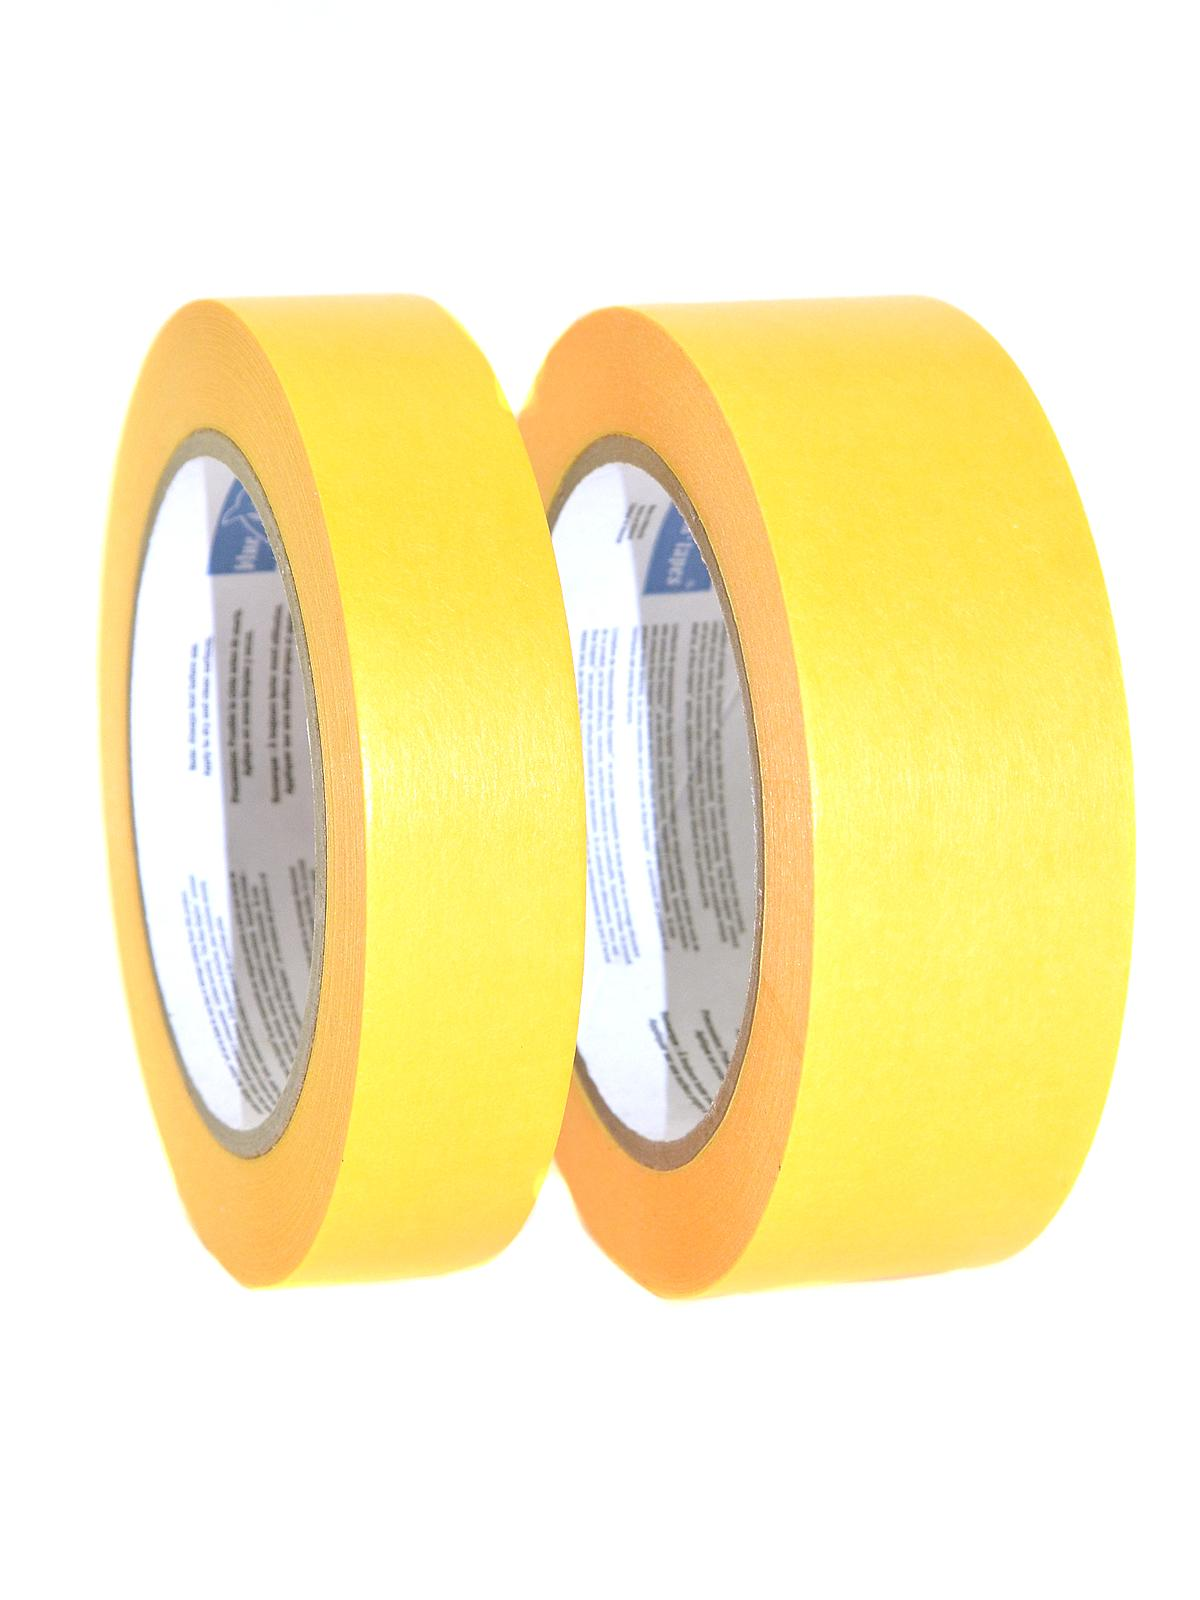 Blue dolphin tapes washi gold tape for Tape works decorative tape